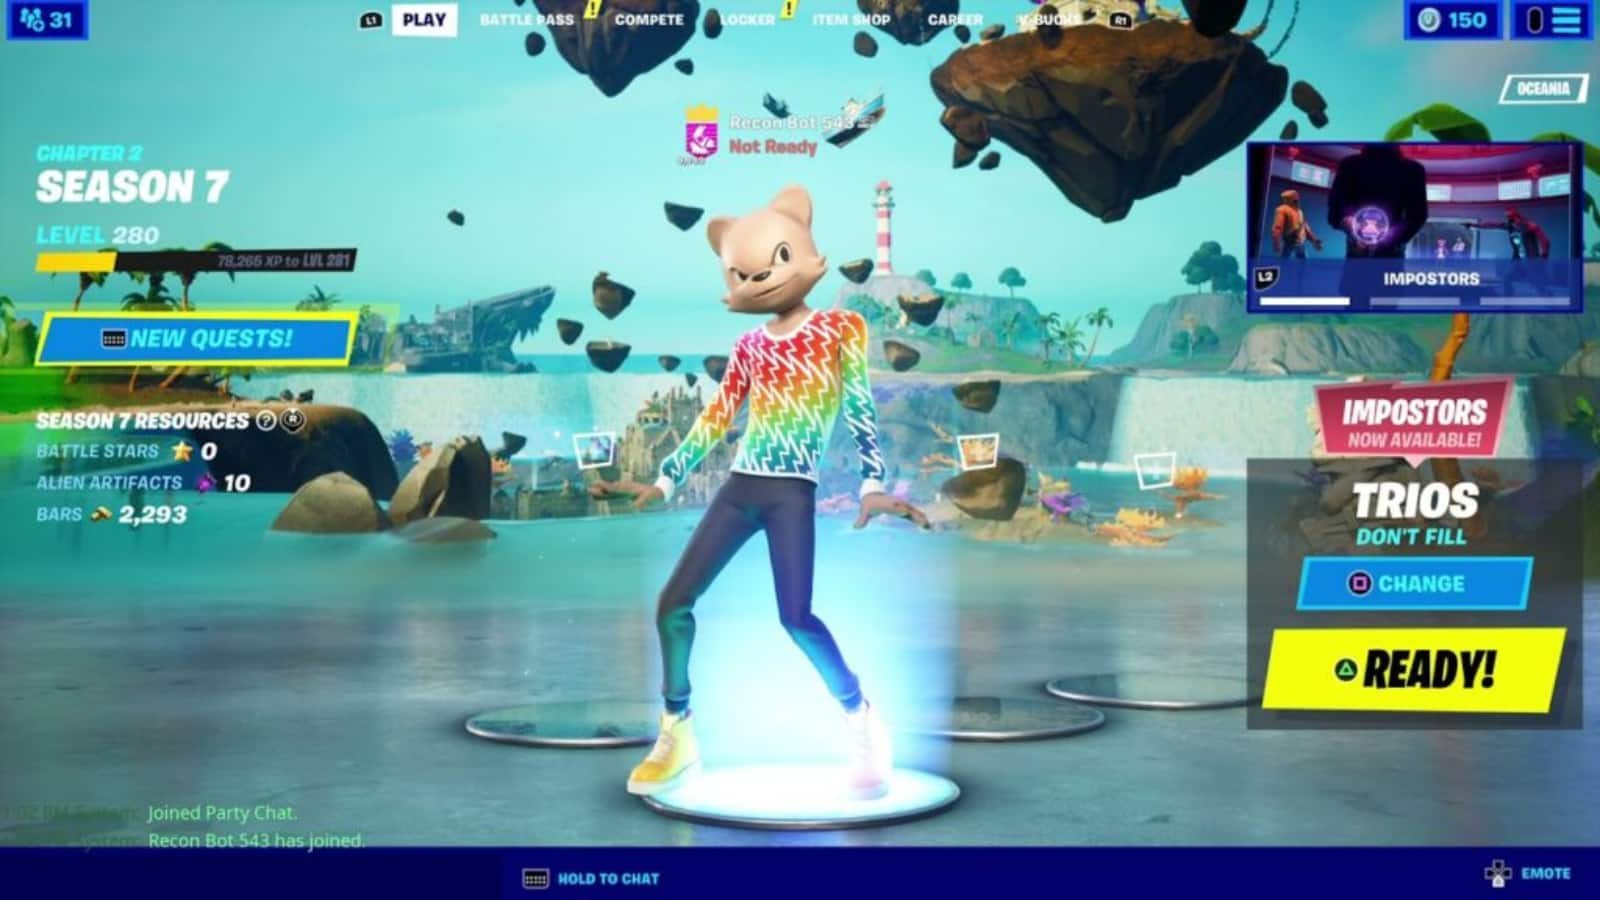 How to get Fortnite Janky Skin in Seaosn 8: Outfit Price, and Other Details